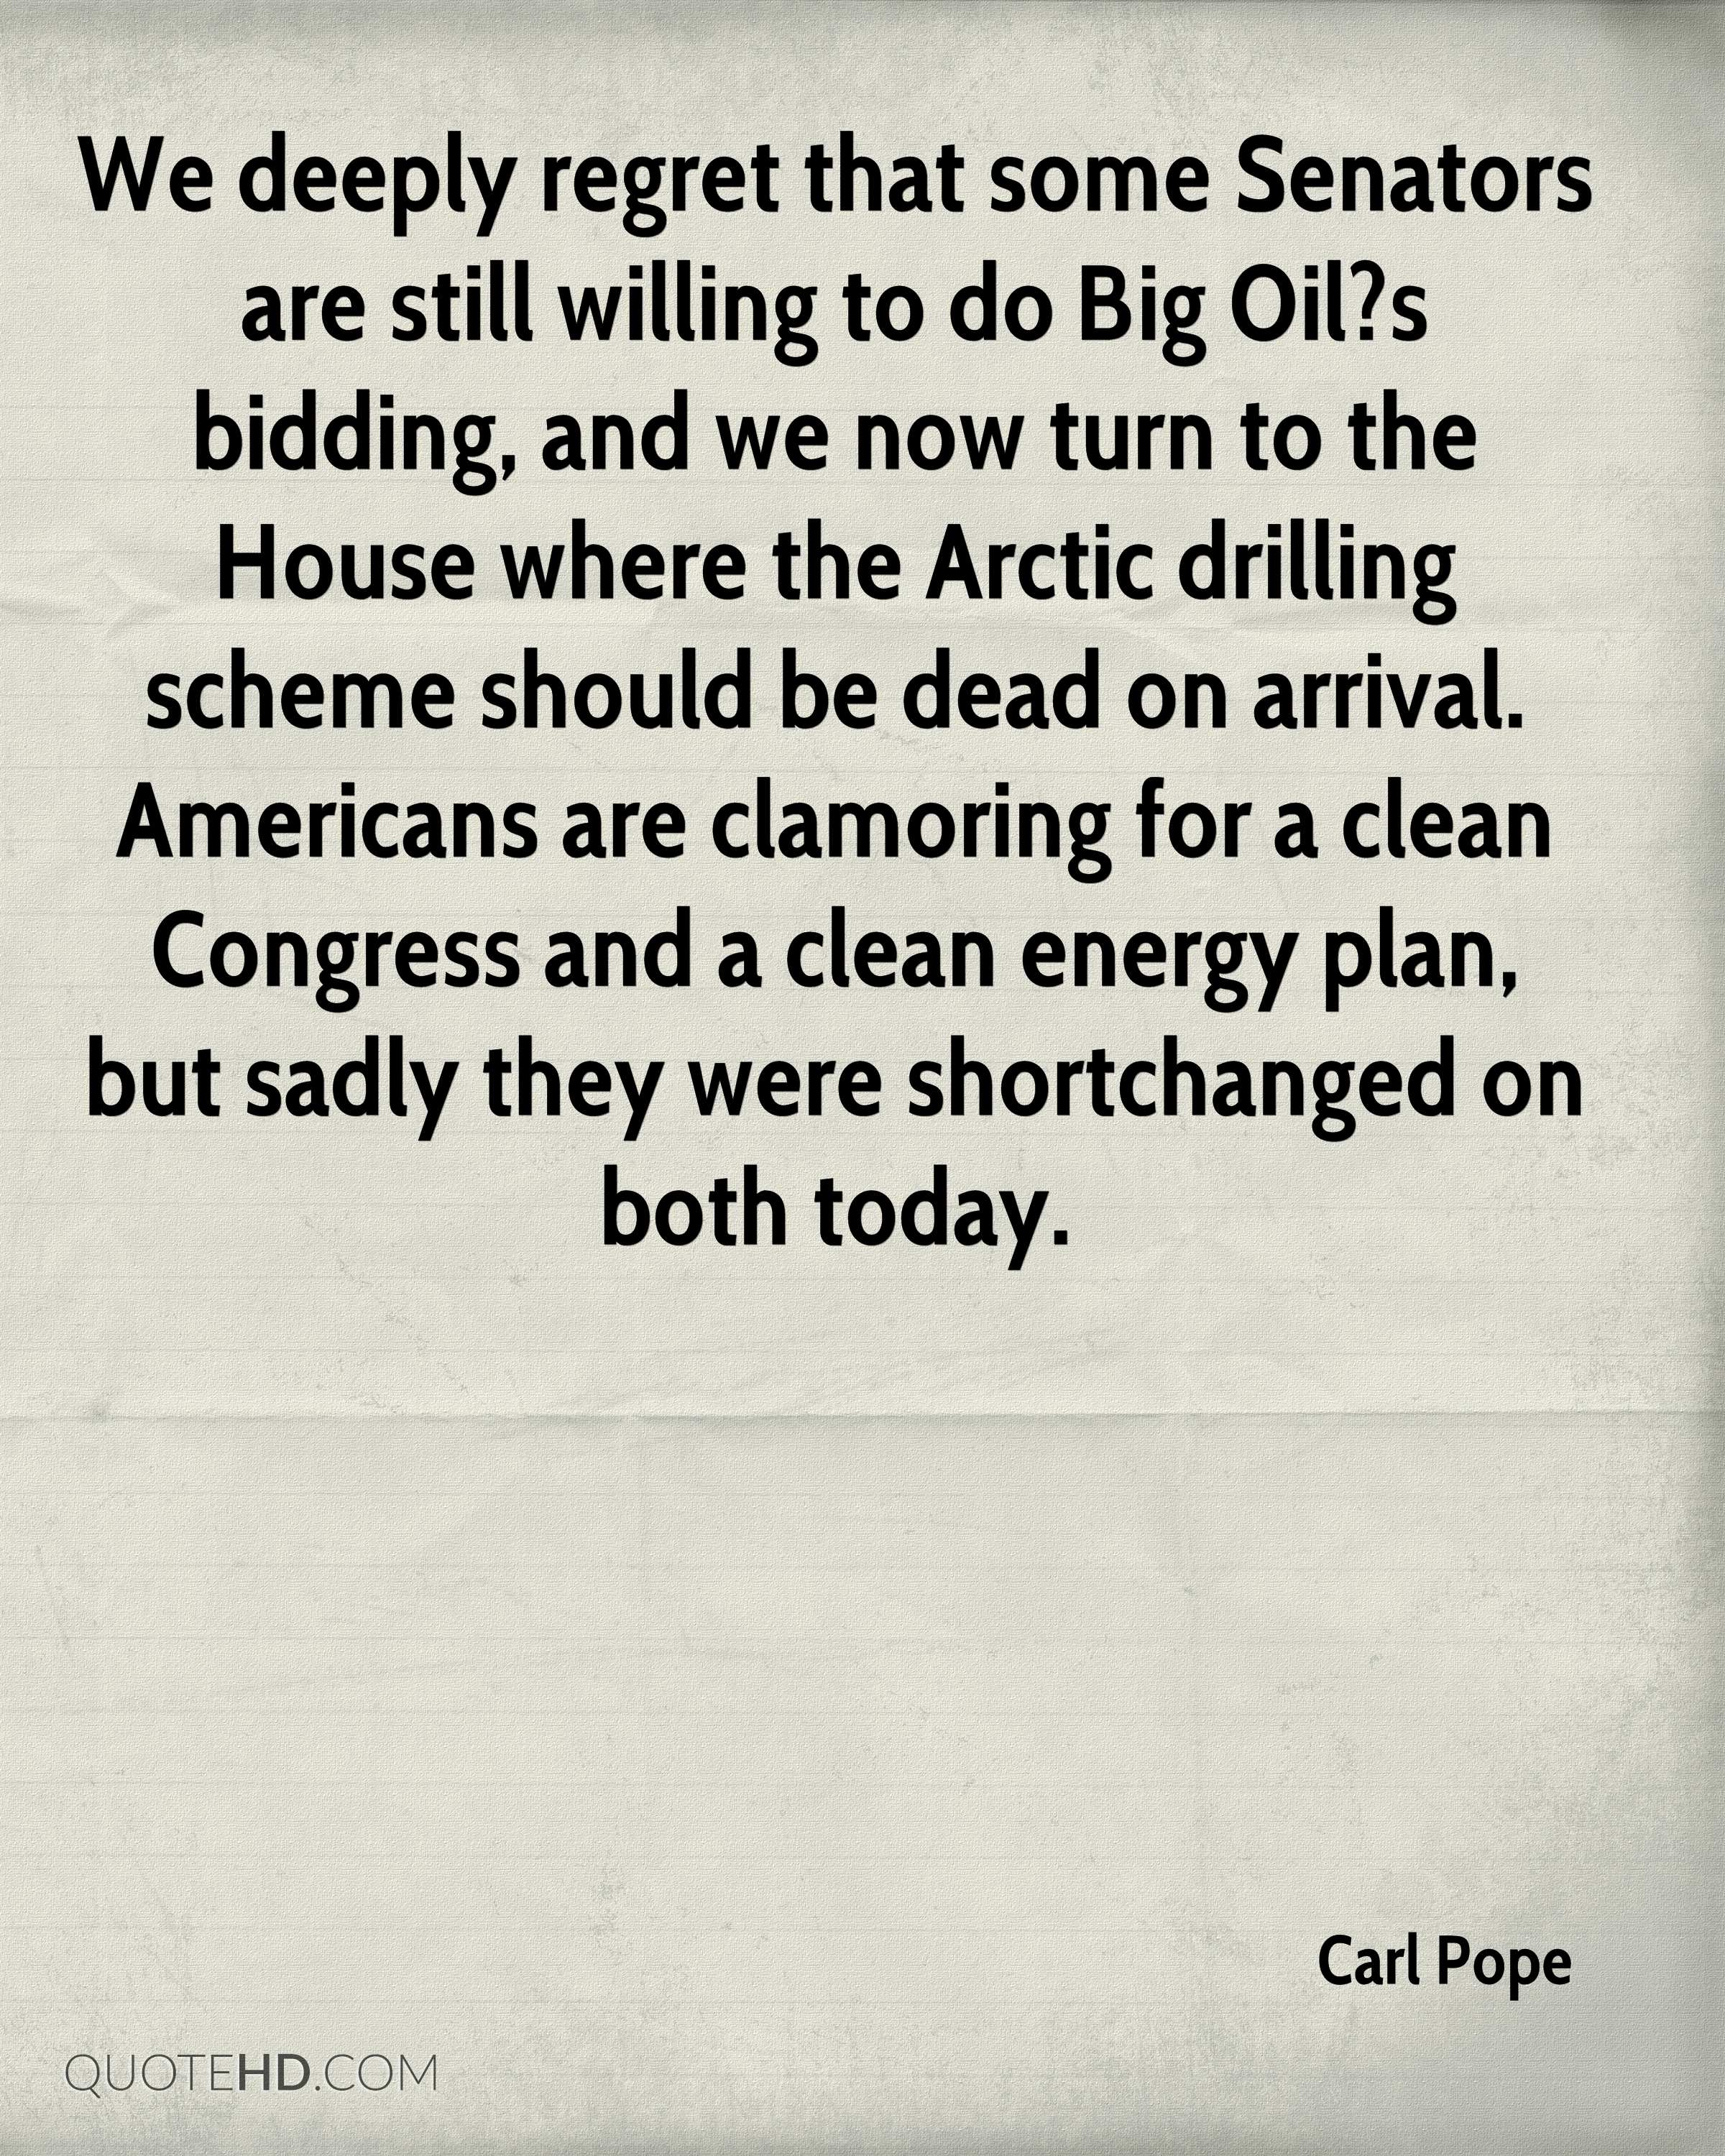 We deeply regret that some Senators are still willing to do Big Oil?s bidding, and we now turn to the House where the Arctic drilling scheme should be dead on arrival. Americans are clamoring for a clean Congress and a clean energy plan, but sadly they were shortchanged on both today.